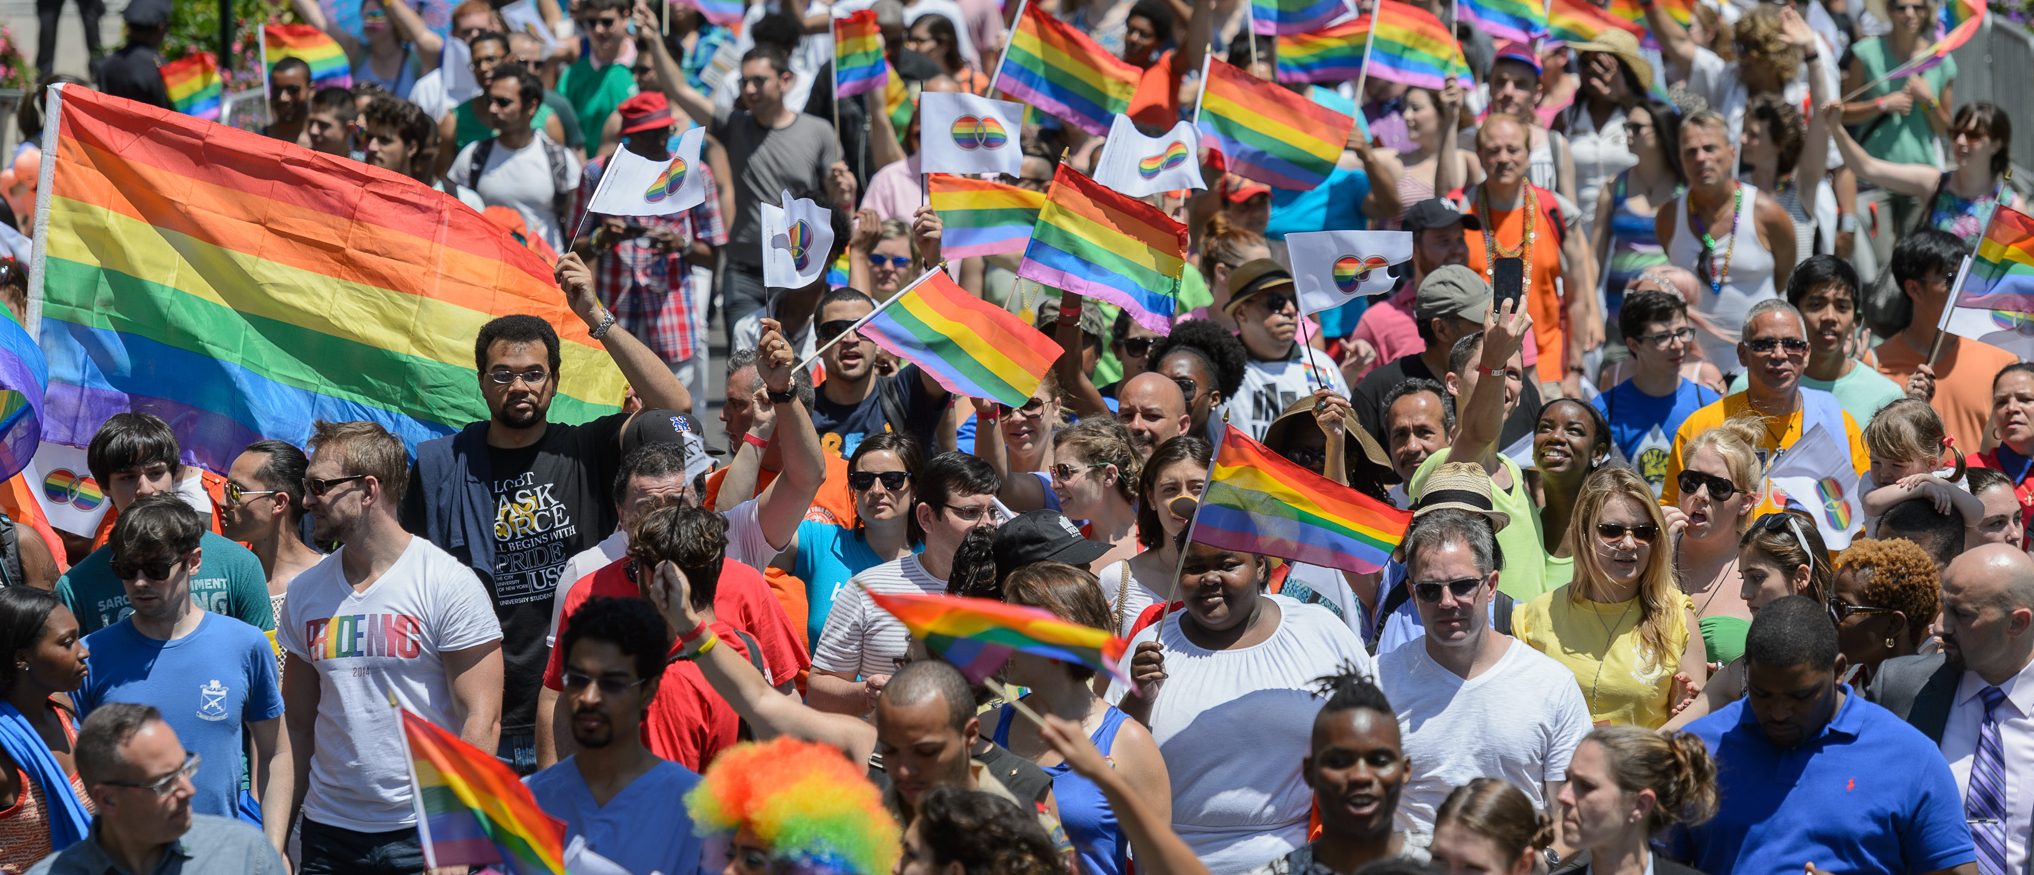 a large crowd of people march through Manhattan with rainbow flags